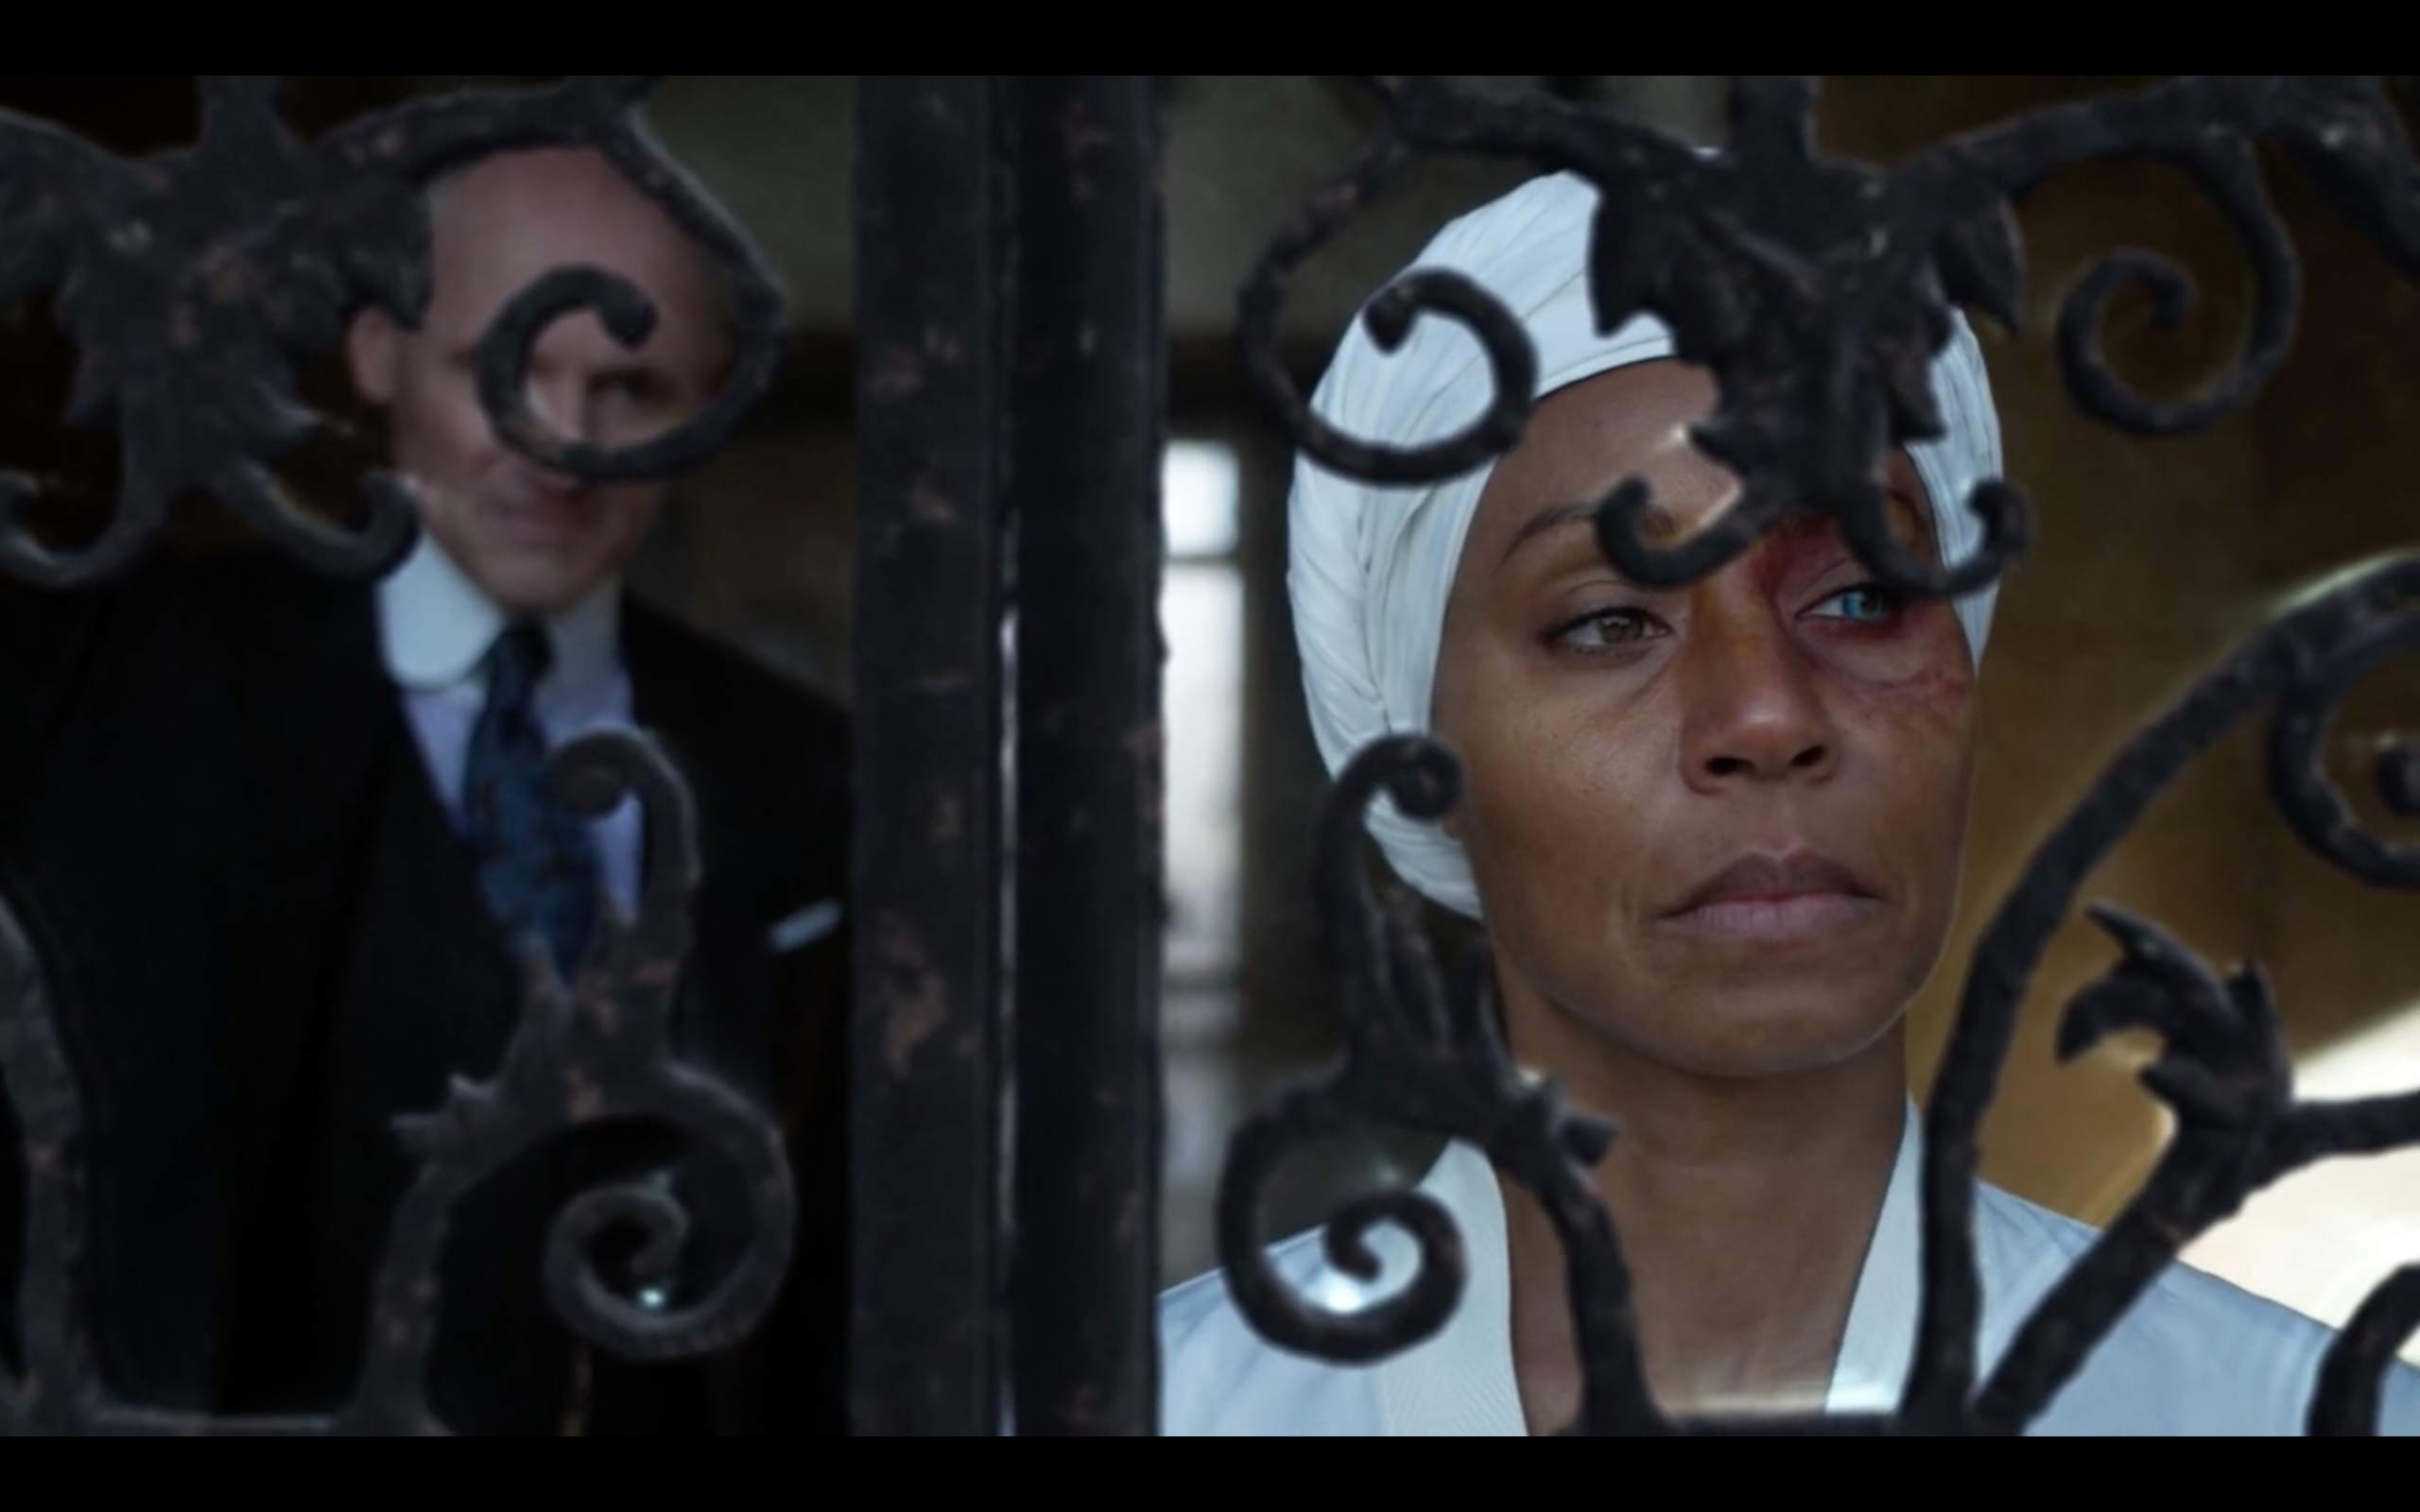 Jada Pinkett-Smith as Fish Mooney in 'Gotham'